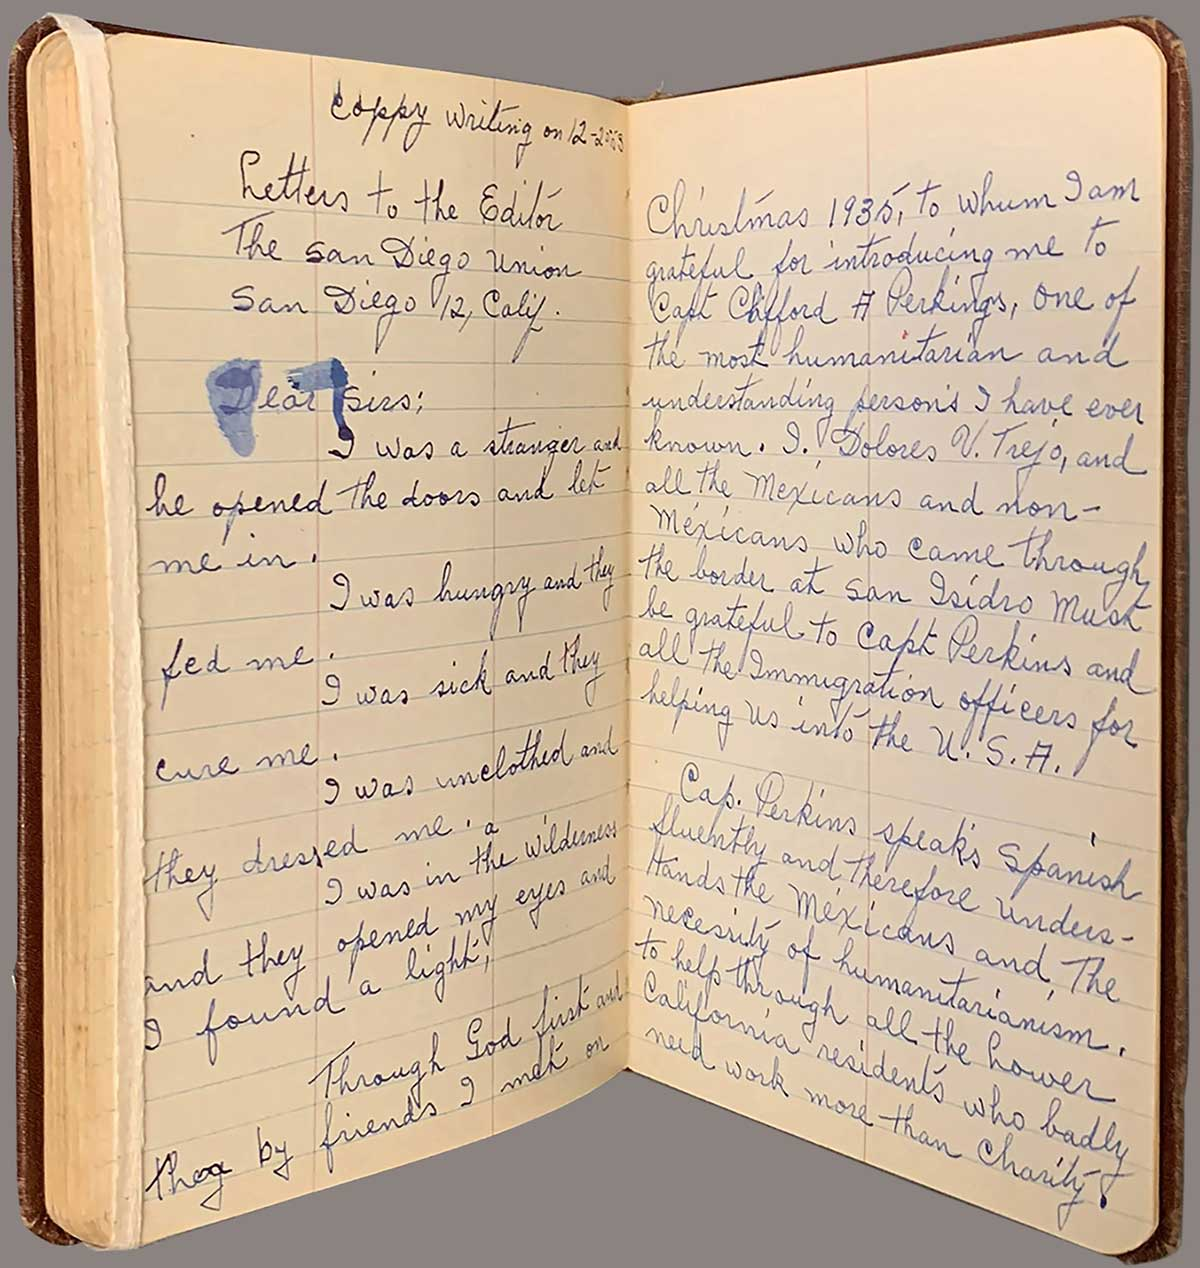 A page from the journal of Dolores V. Trejo, a single immigrant worker from Mexico who worked in California | The Huntington Library, Art Museum, and Botanical Gardens